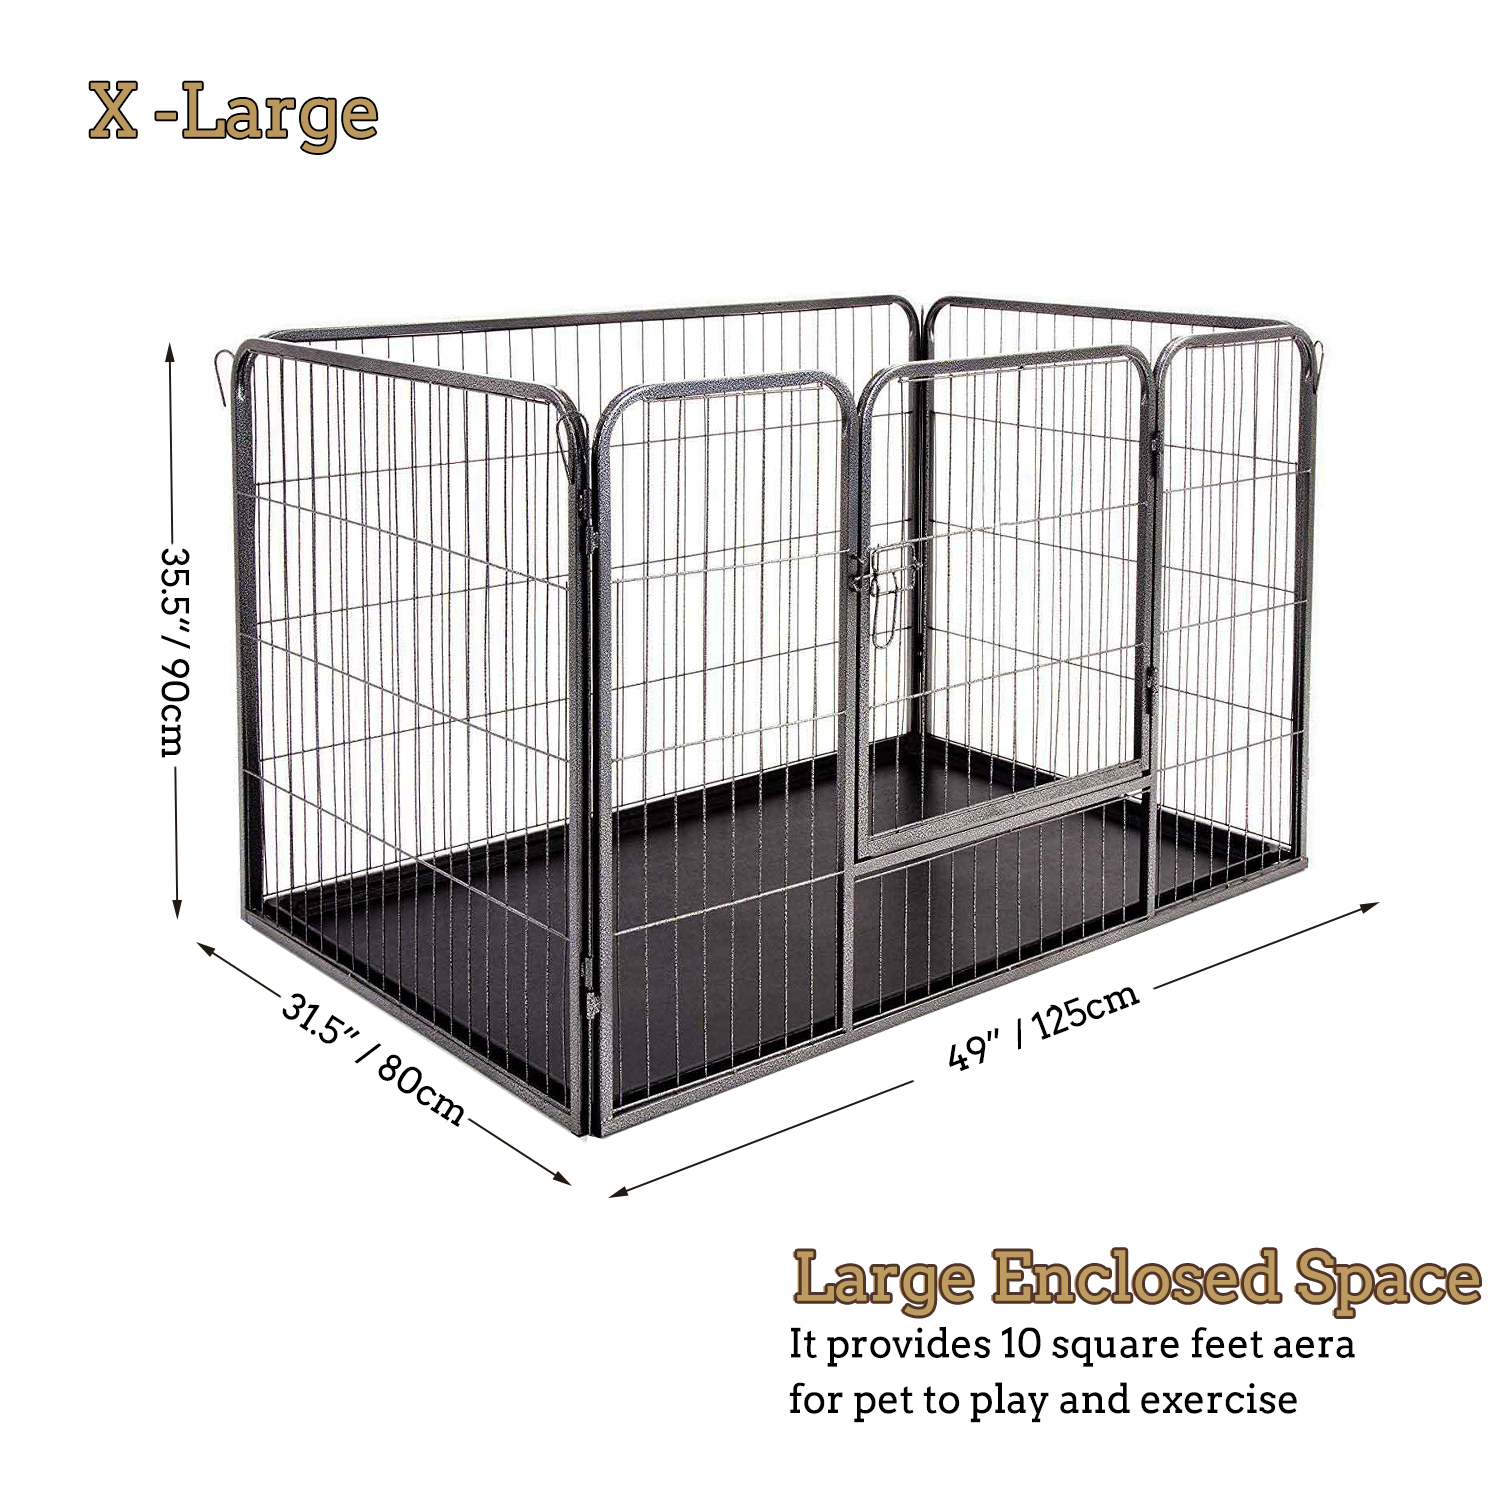 7097e3aa9c1 4 x Panel Heavy Duty Puppy Play Pen Dog Playpen Whelping Pen Pens With  Plastic Floor Tray